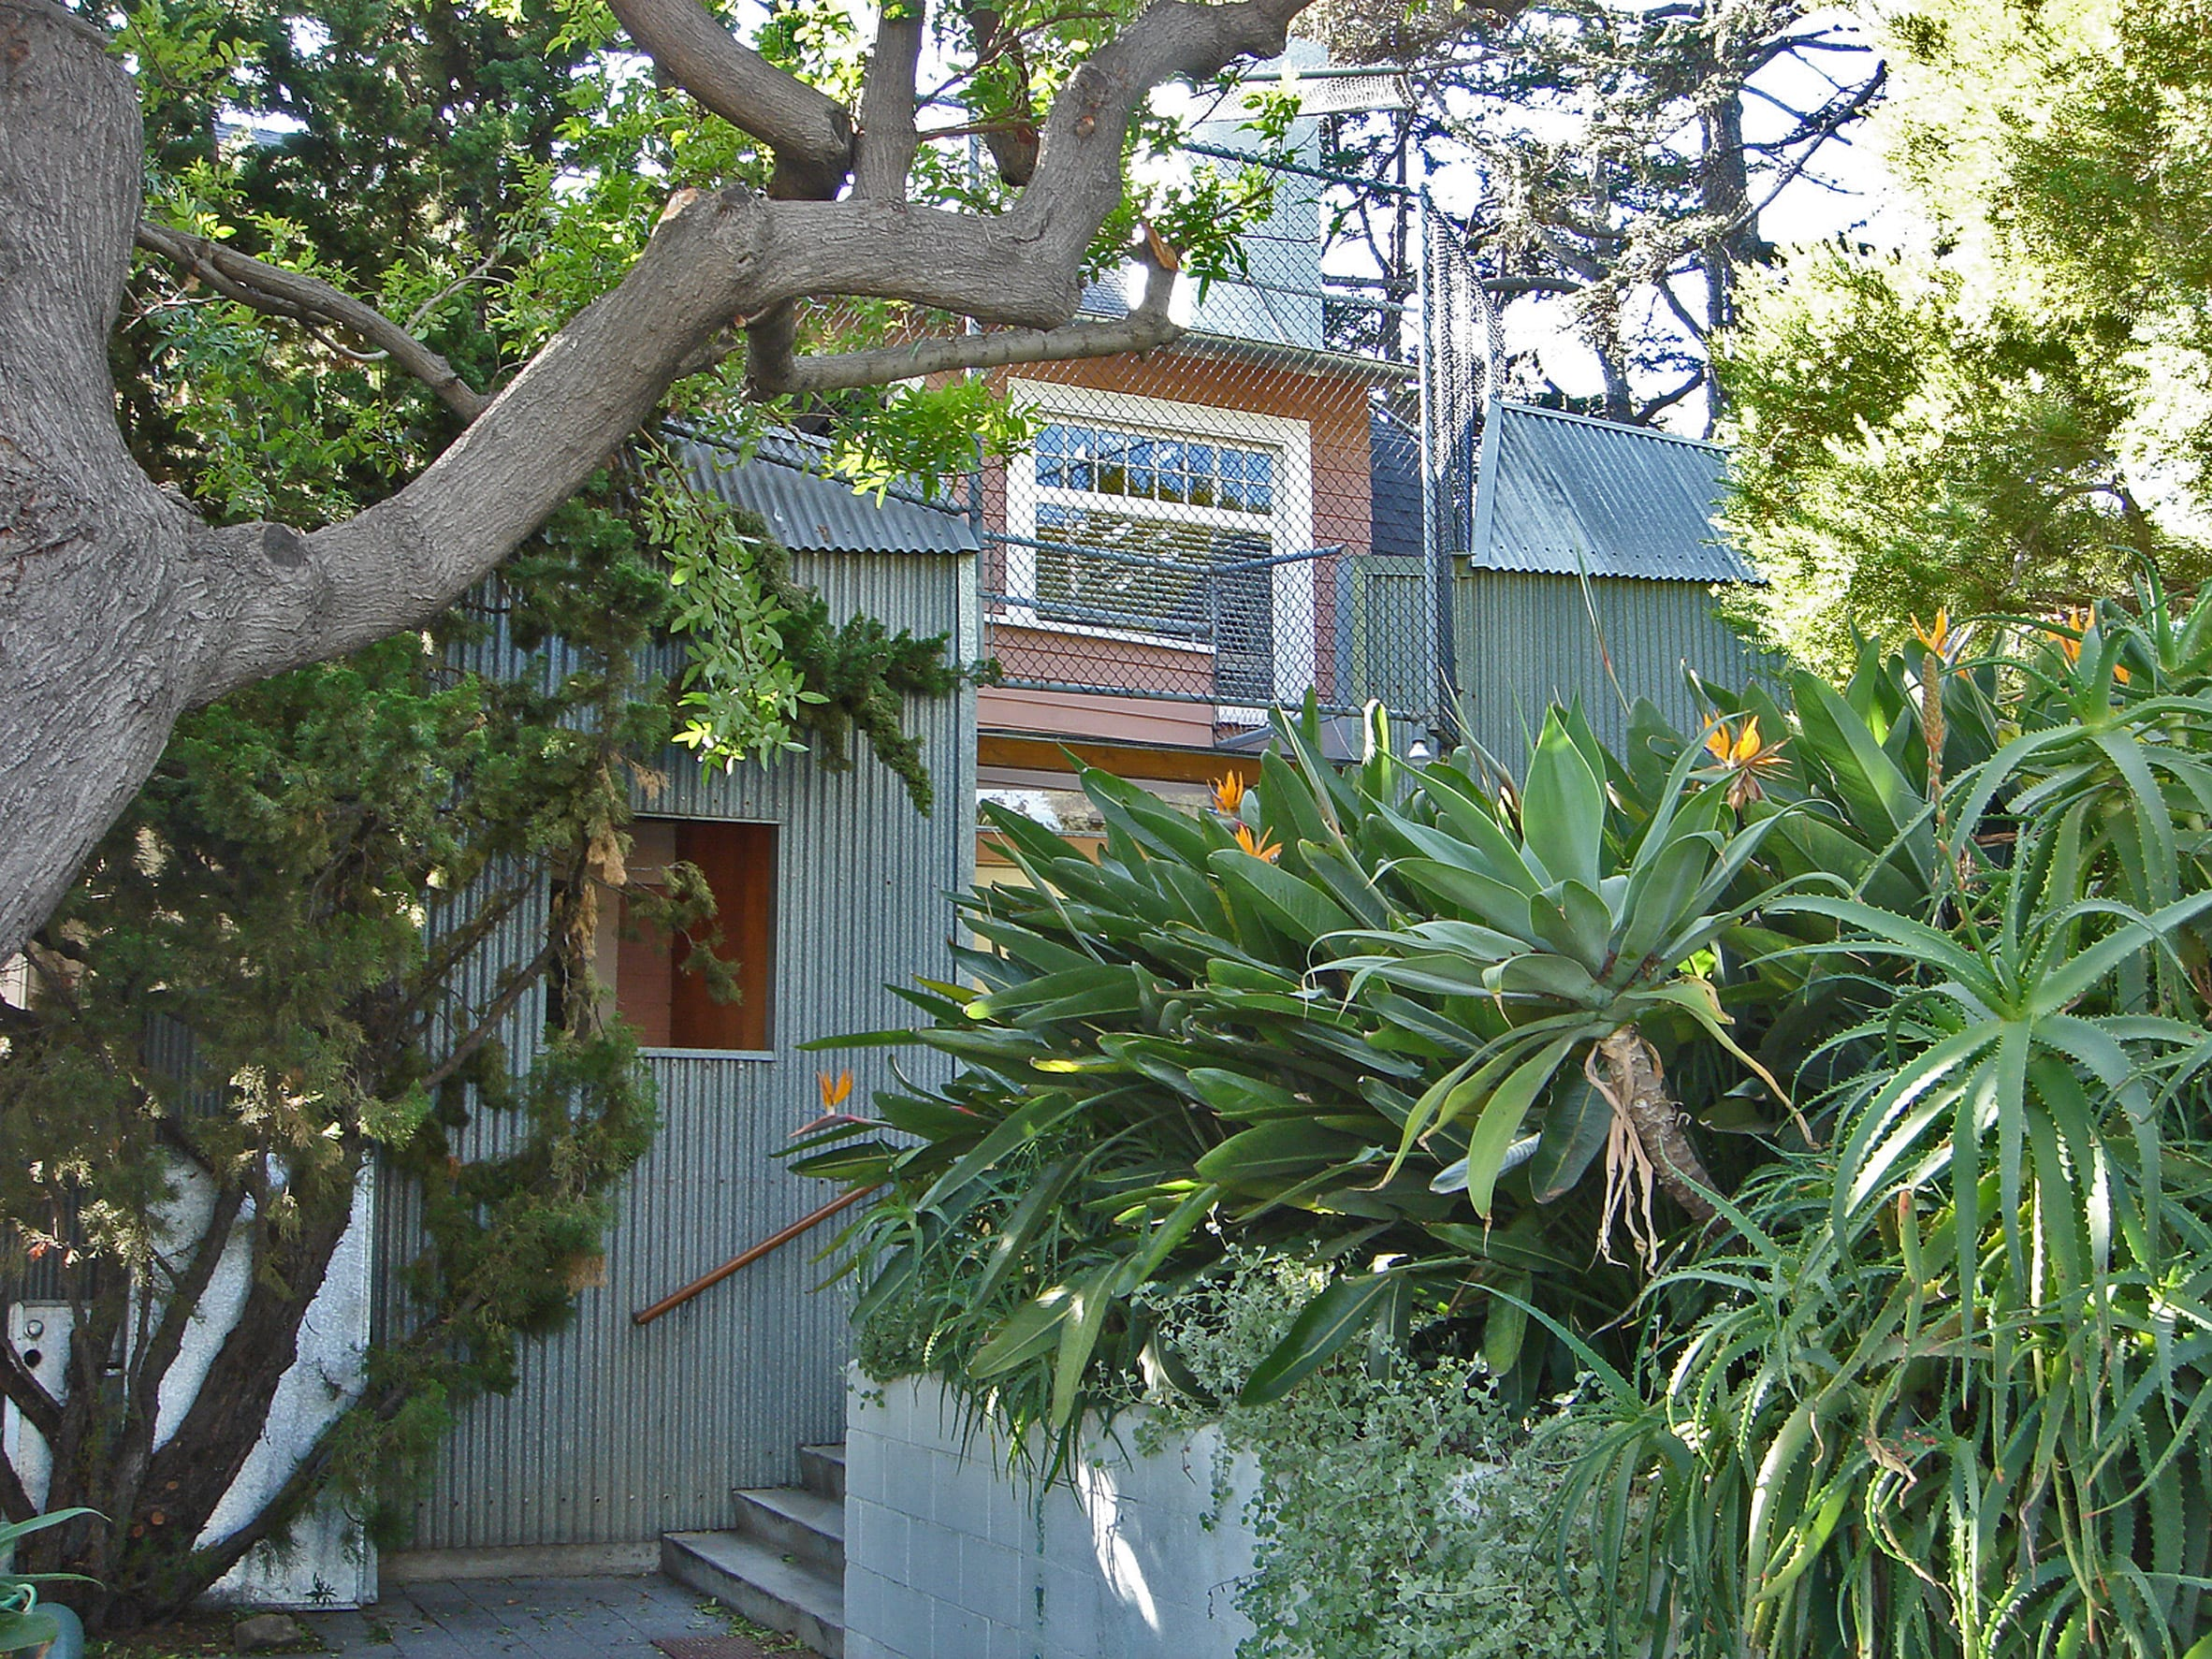 The home has corrugated galvanised steel walls